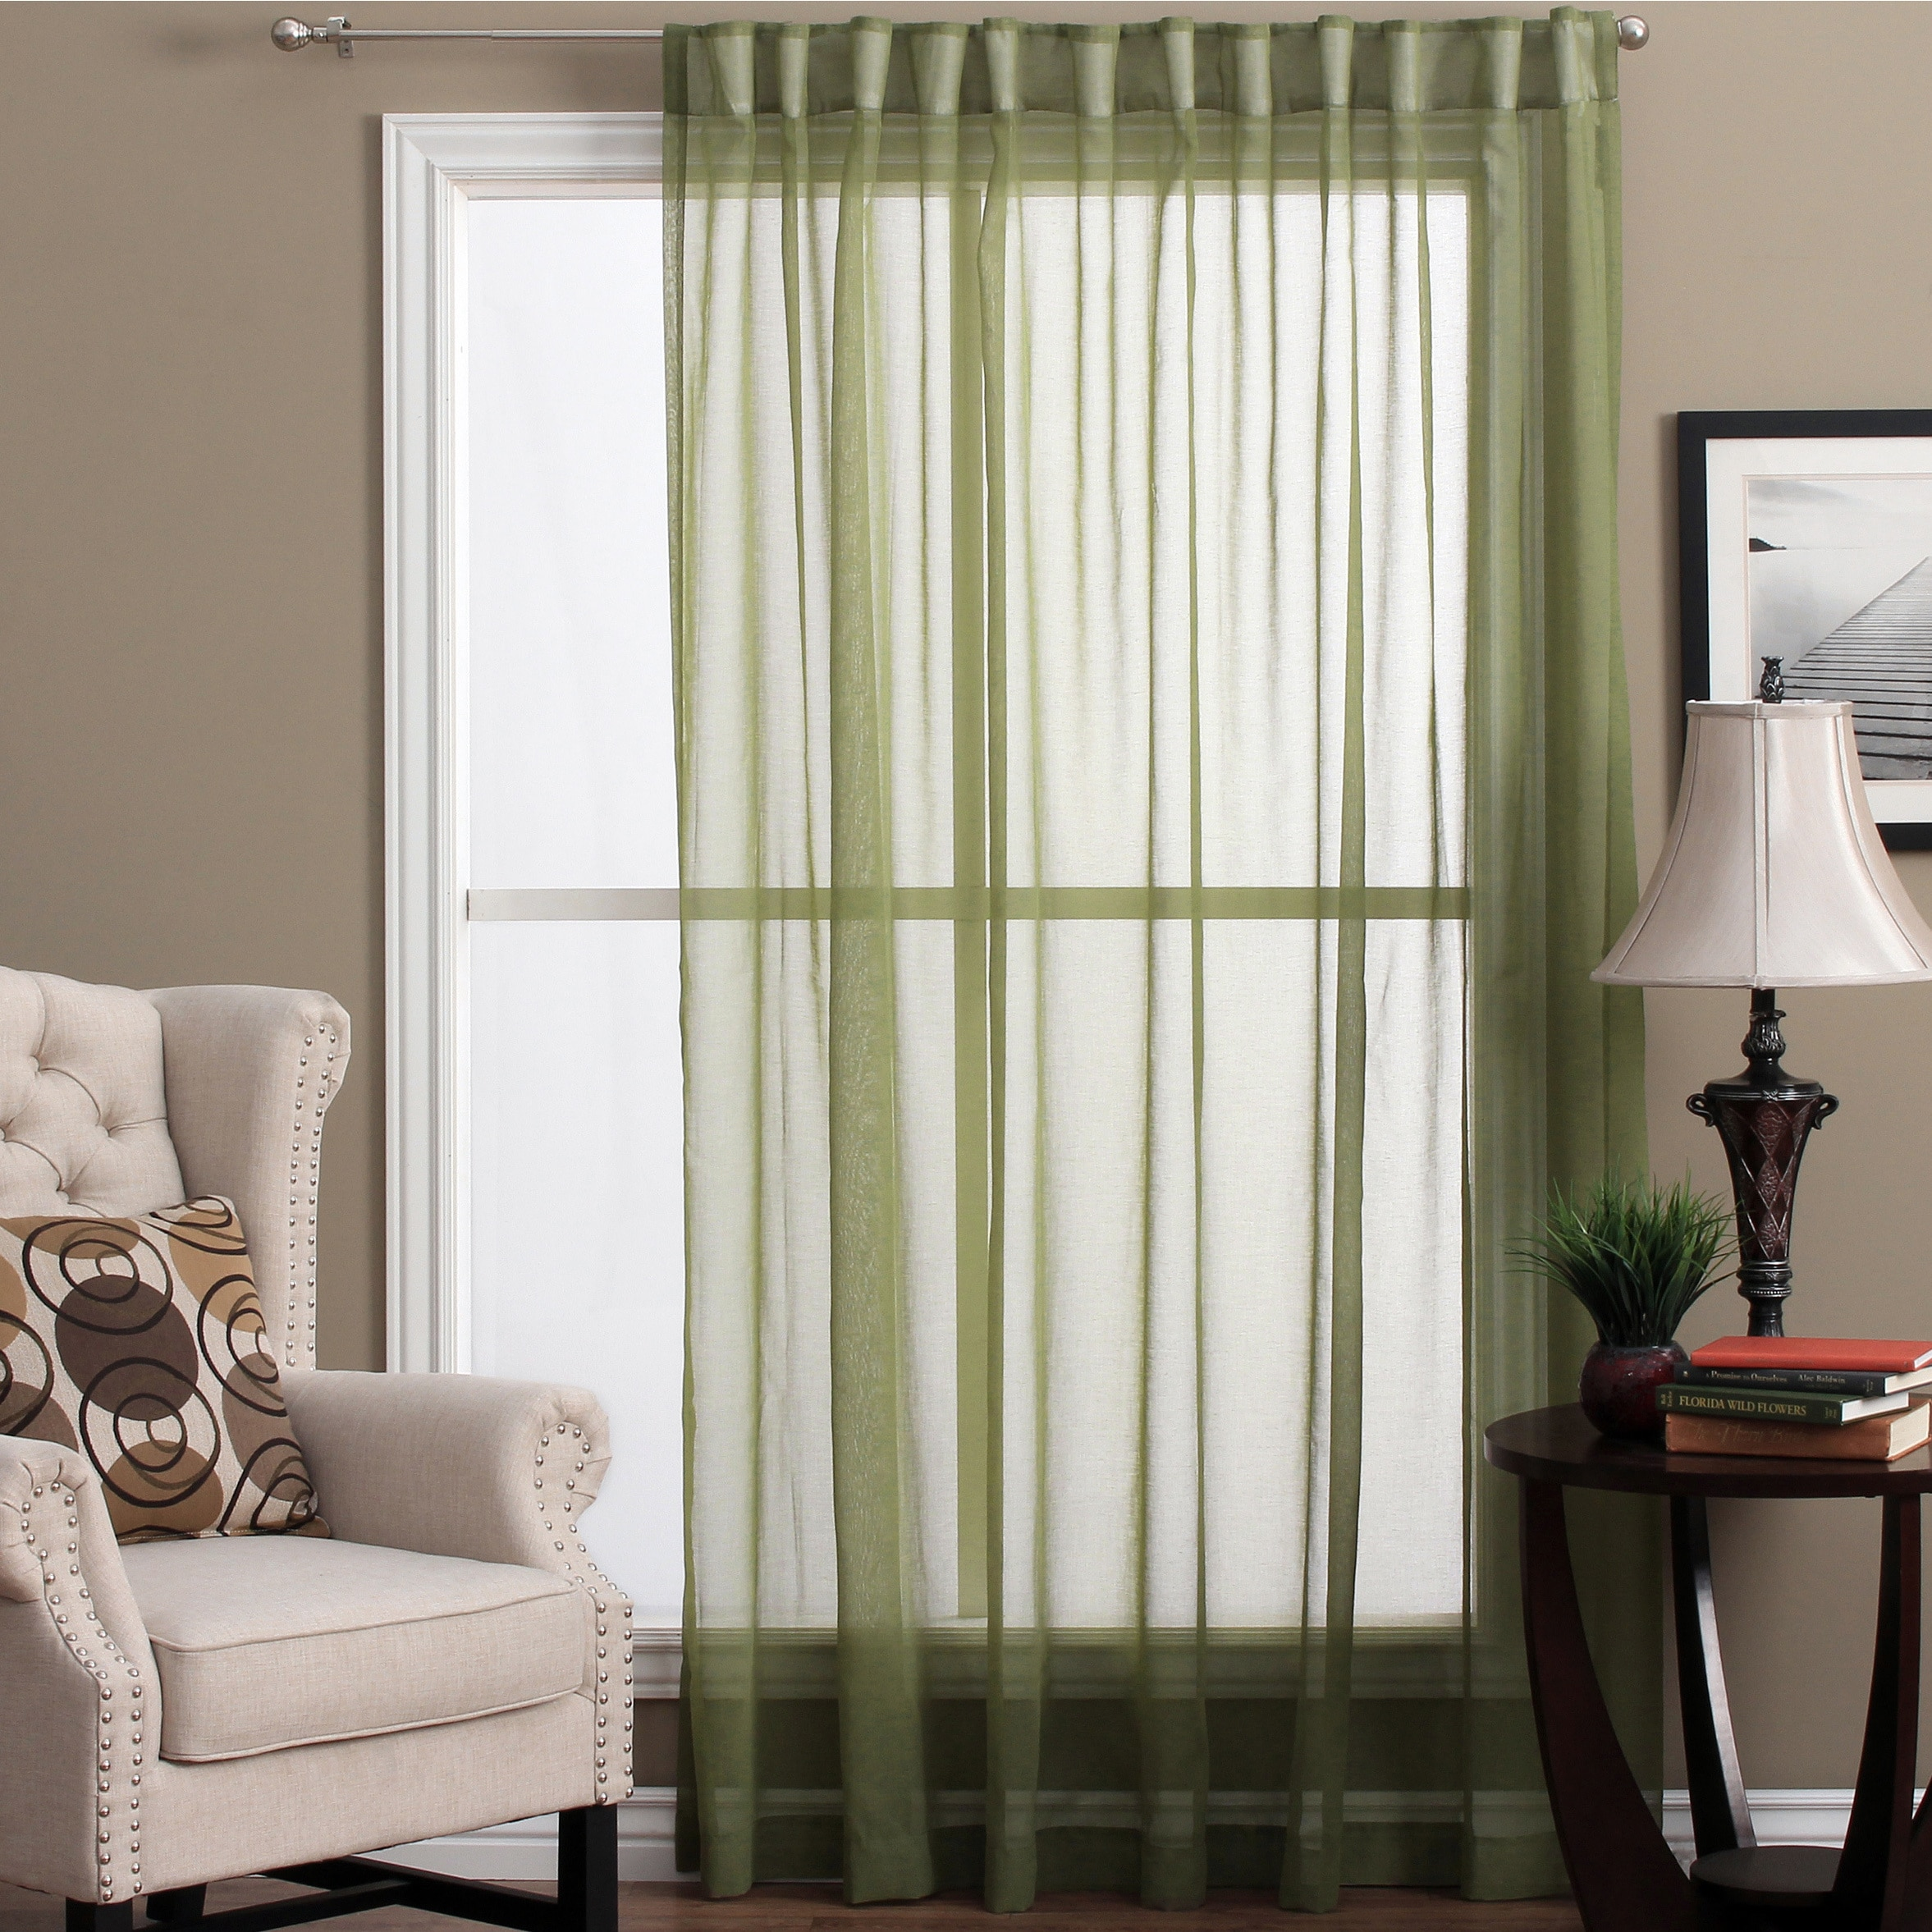 world set curtains cotton back tab crinkle do drapes white xxx product sheer of voile market curtain